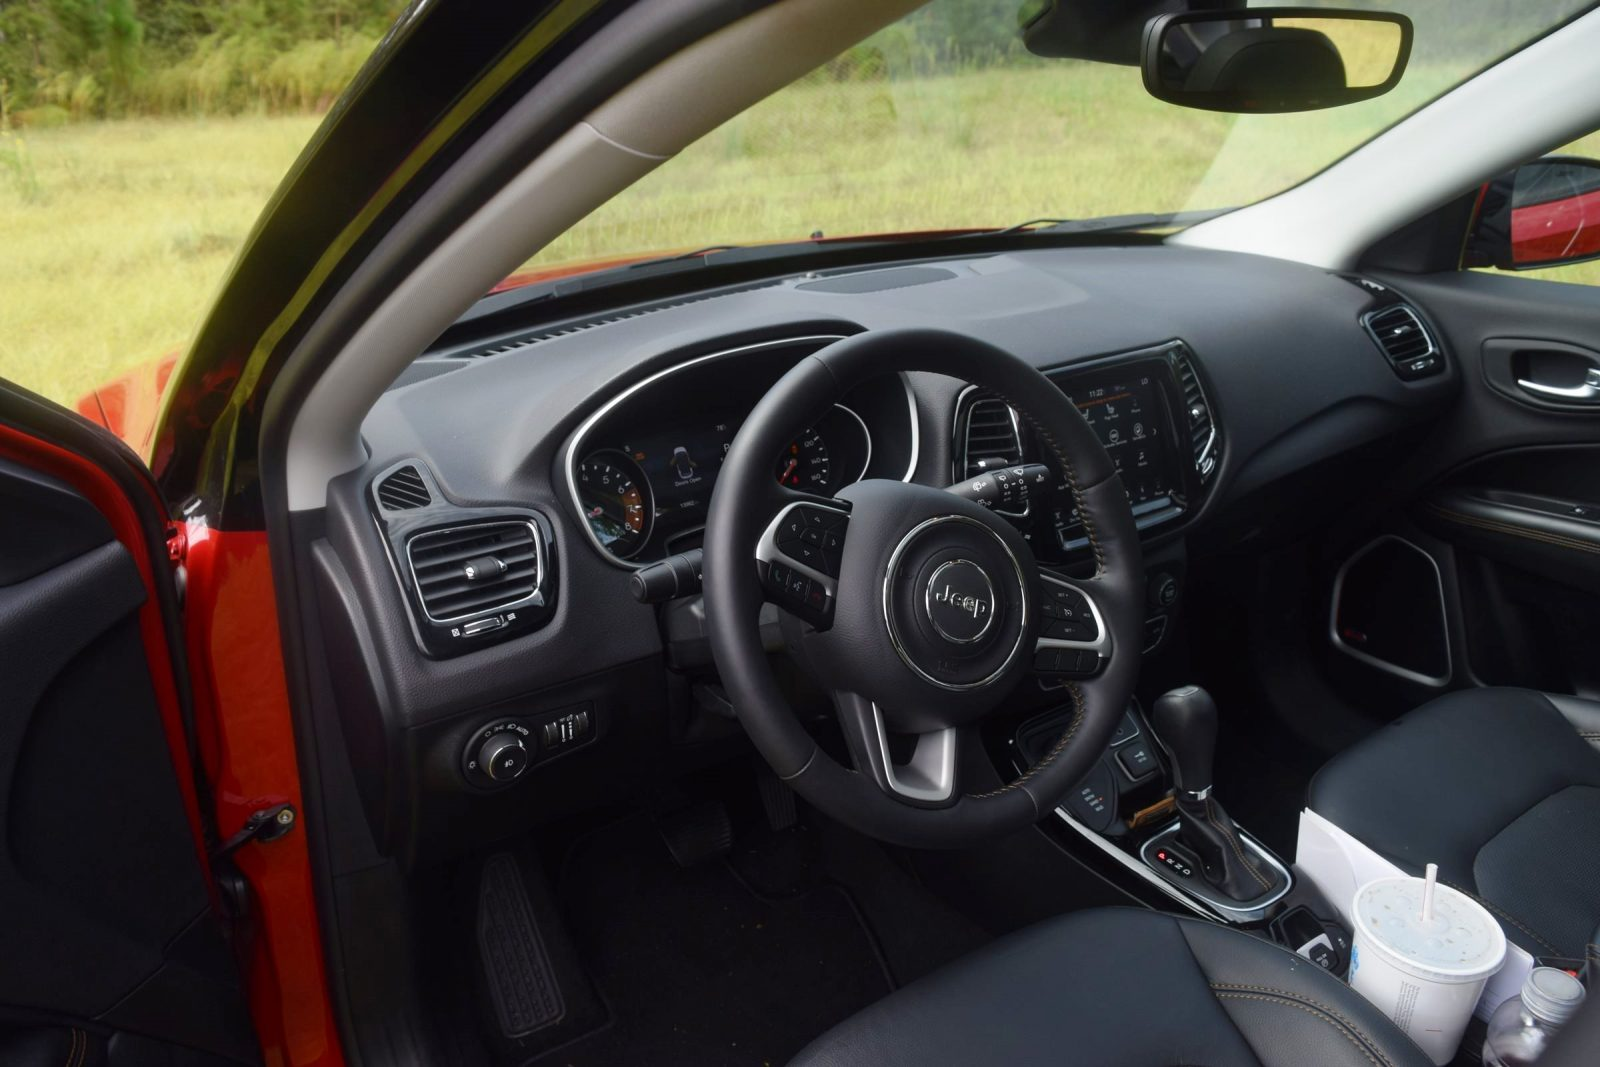 jeep compass review interior photos 18. Black Bedroom Furniture Sets. Home Design Ideas